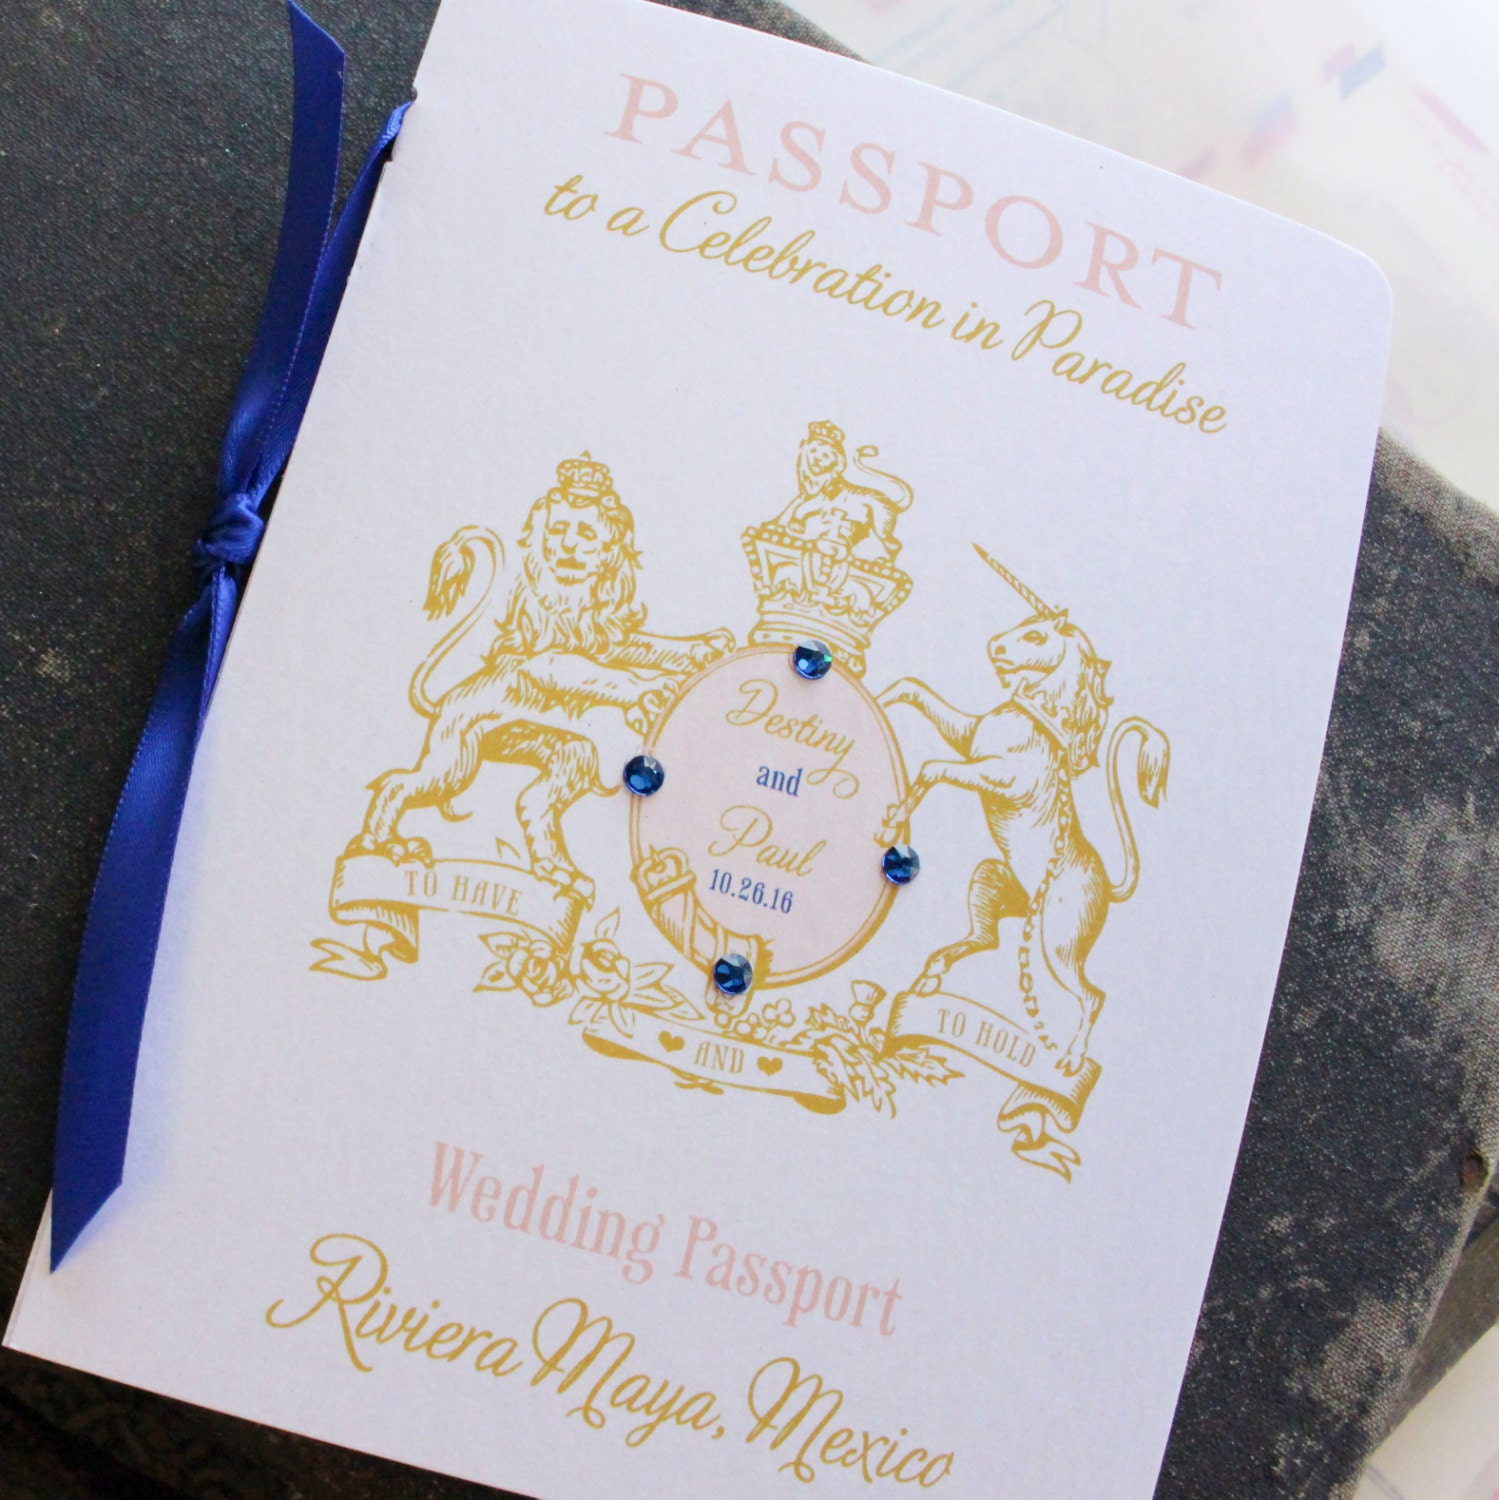 Wedding Crest Passport Wedding Invitation Riviera Maya